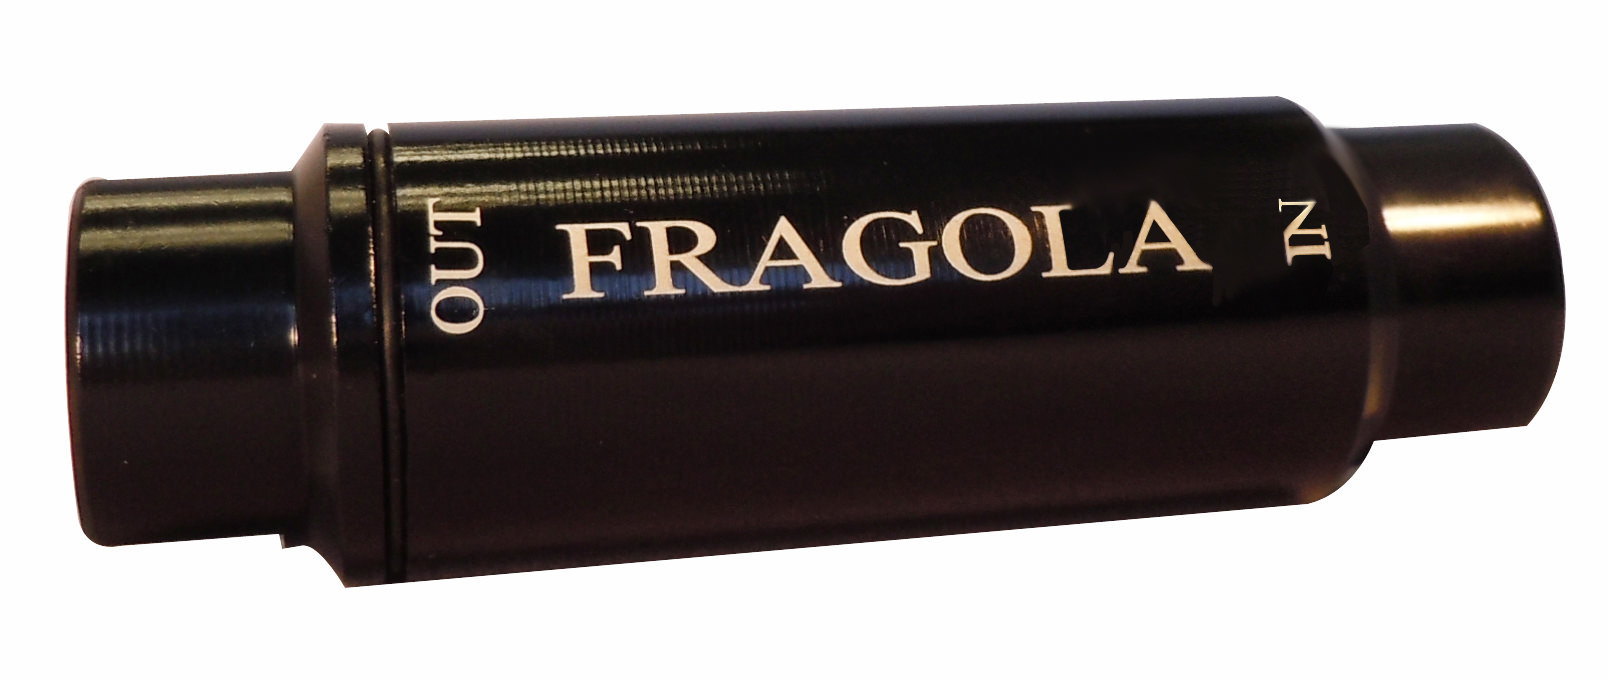 Fragola 960001-BL Fuel Filter, In-Line, 40 Micron, Paper Element, 6 AN Female Inlet, 6 AN Female Outlet, Aluminum, Black Anodize, Each